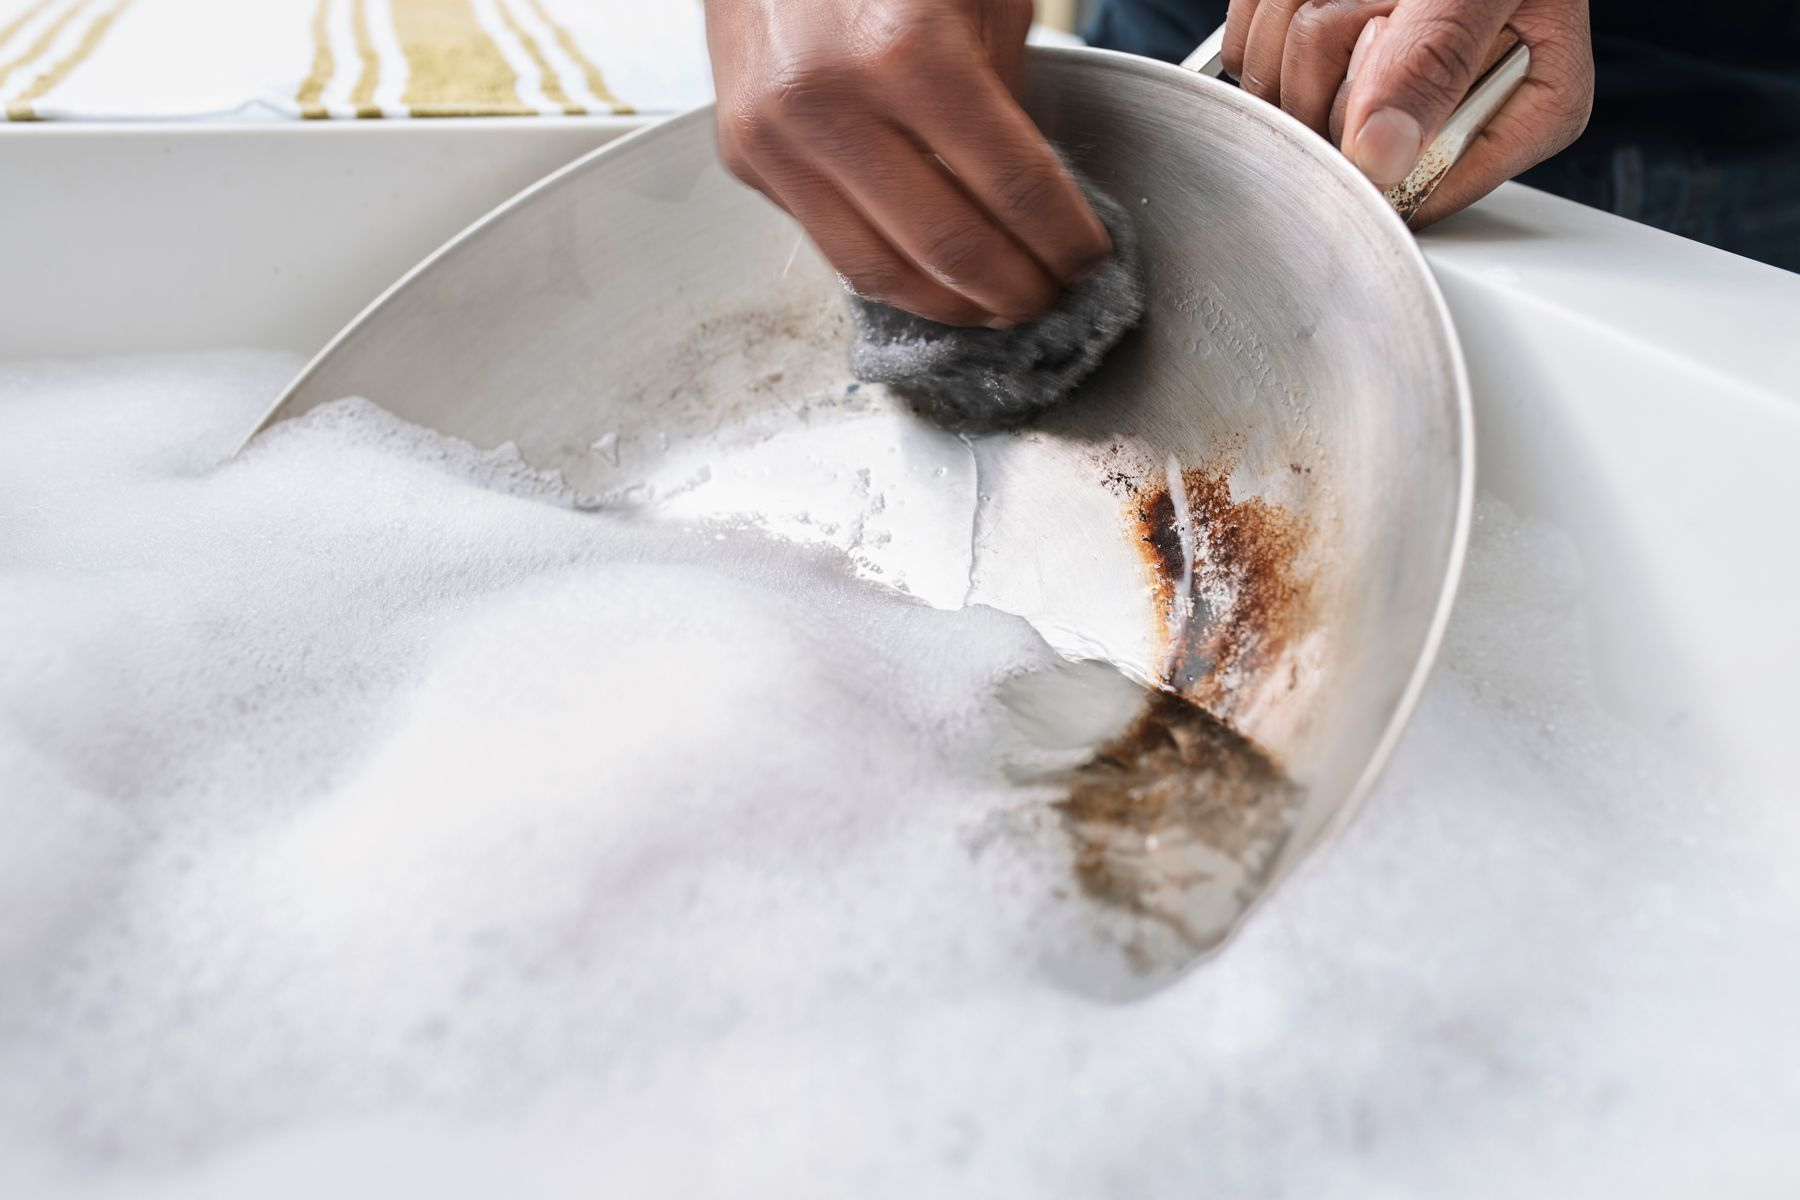 Step 1: person scrubbing rusty wok with a steel wool pad